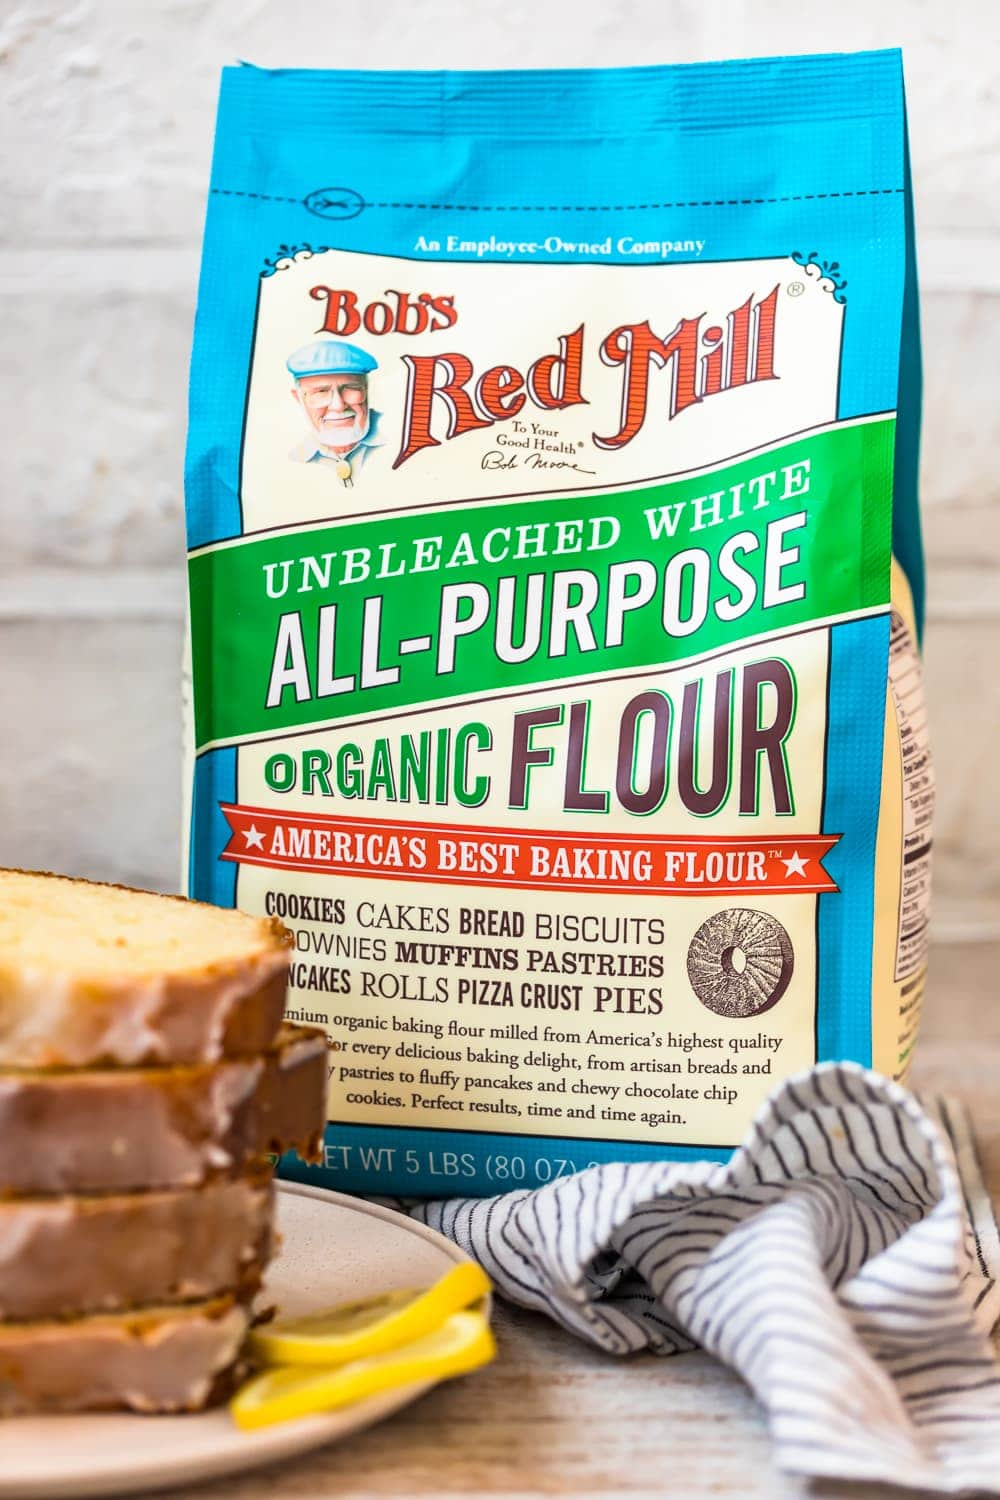 bob's red mill unbleached white all-purpose organic flour bag and a stack of bread slices on a plate